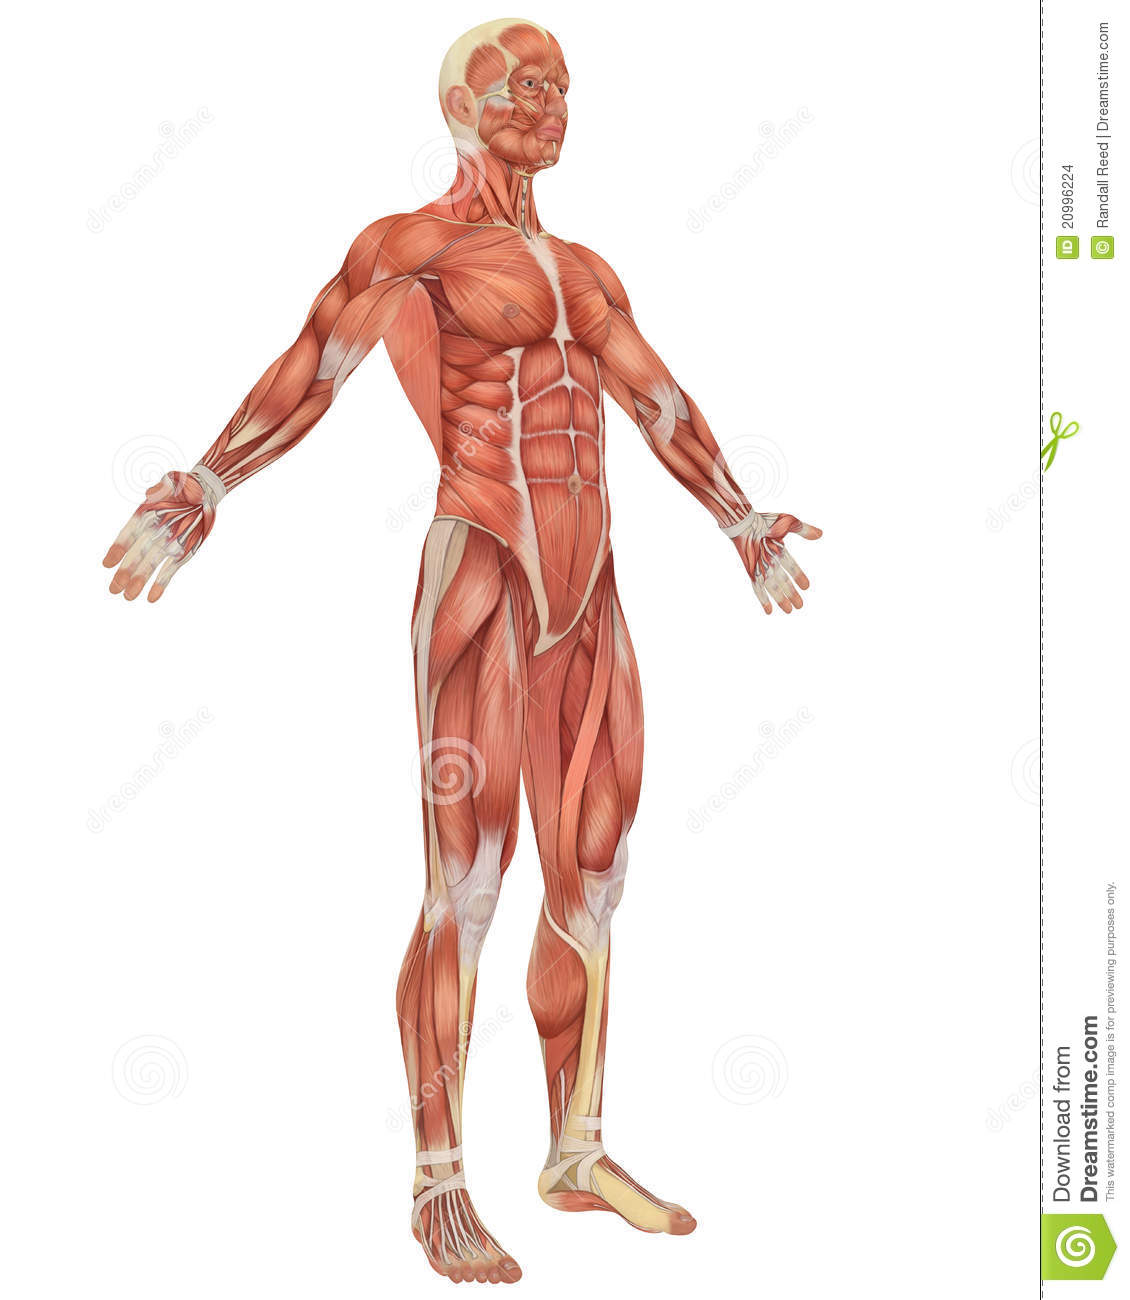 Male Muscular Anatomy Angled Front View Stock Illustration